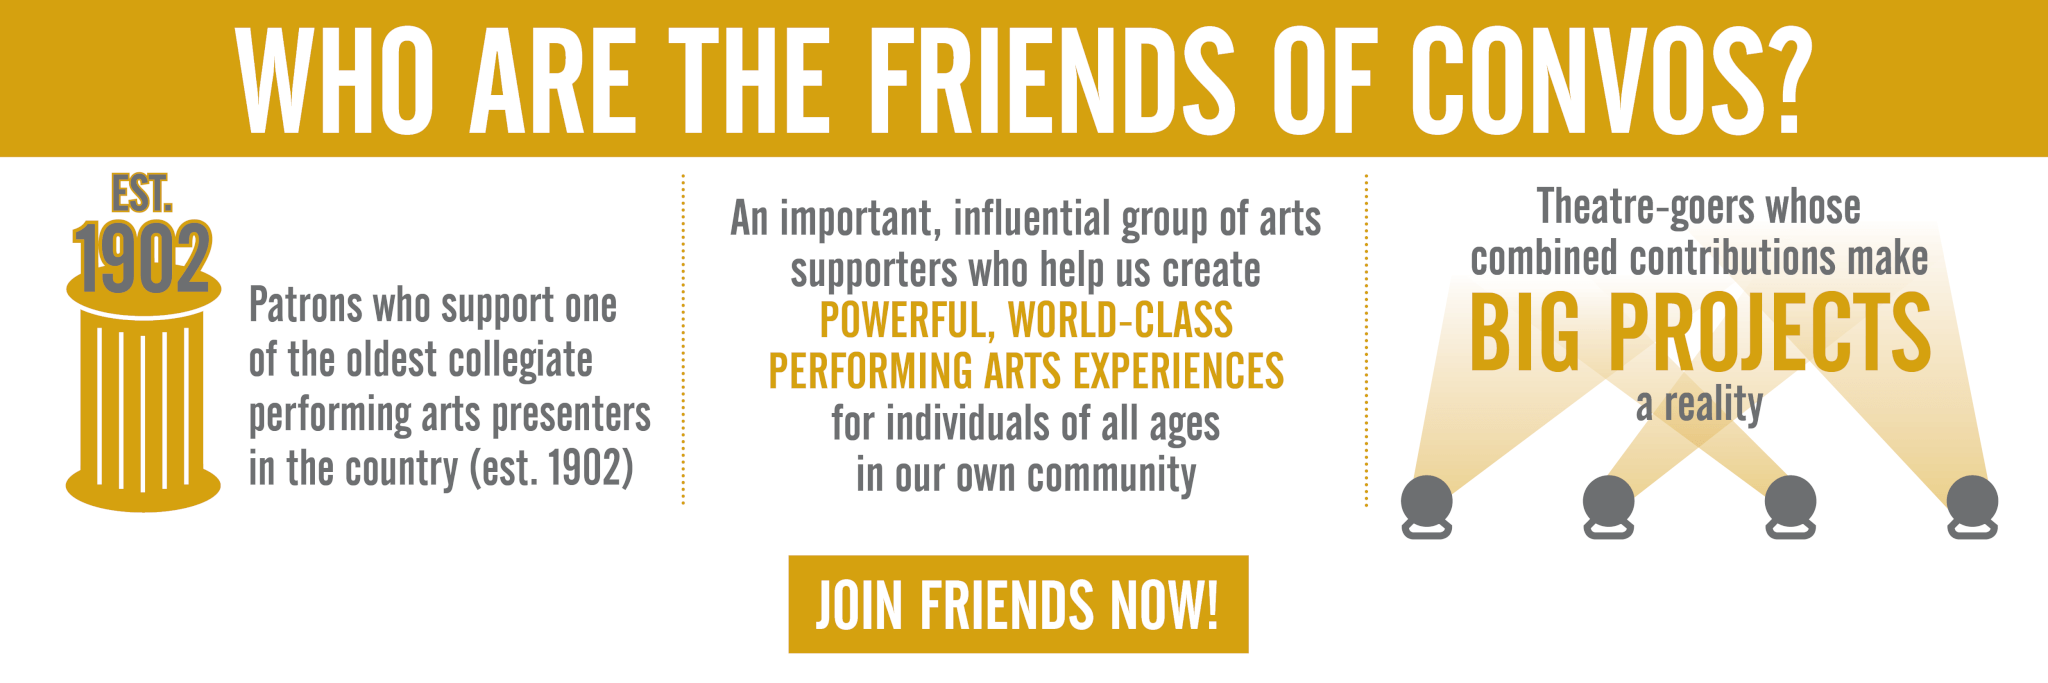 WHO ARE THE FRIENDS OF CONVOS? Patrons who support one of the oldest collegiate performing arts presenters in the country (est. 1902). An important, influential group of arts supporters who help us create powerful, world-class performing arts experiences for individuals of all ages in our own community. Theatre-goers whose combined contributions make big projects a reality.